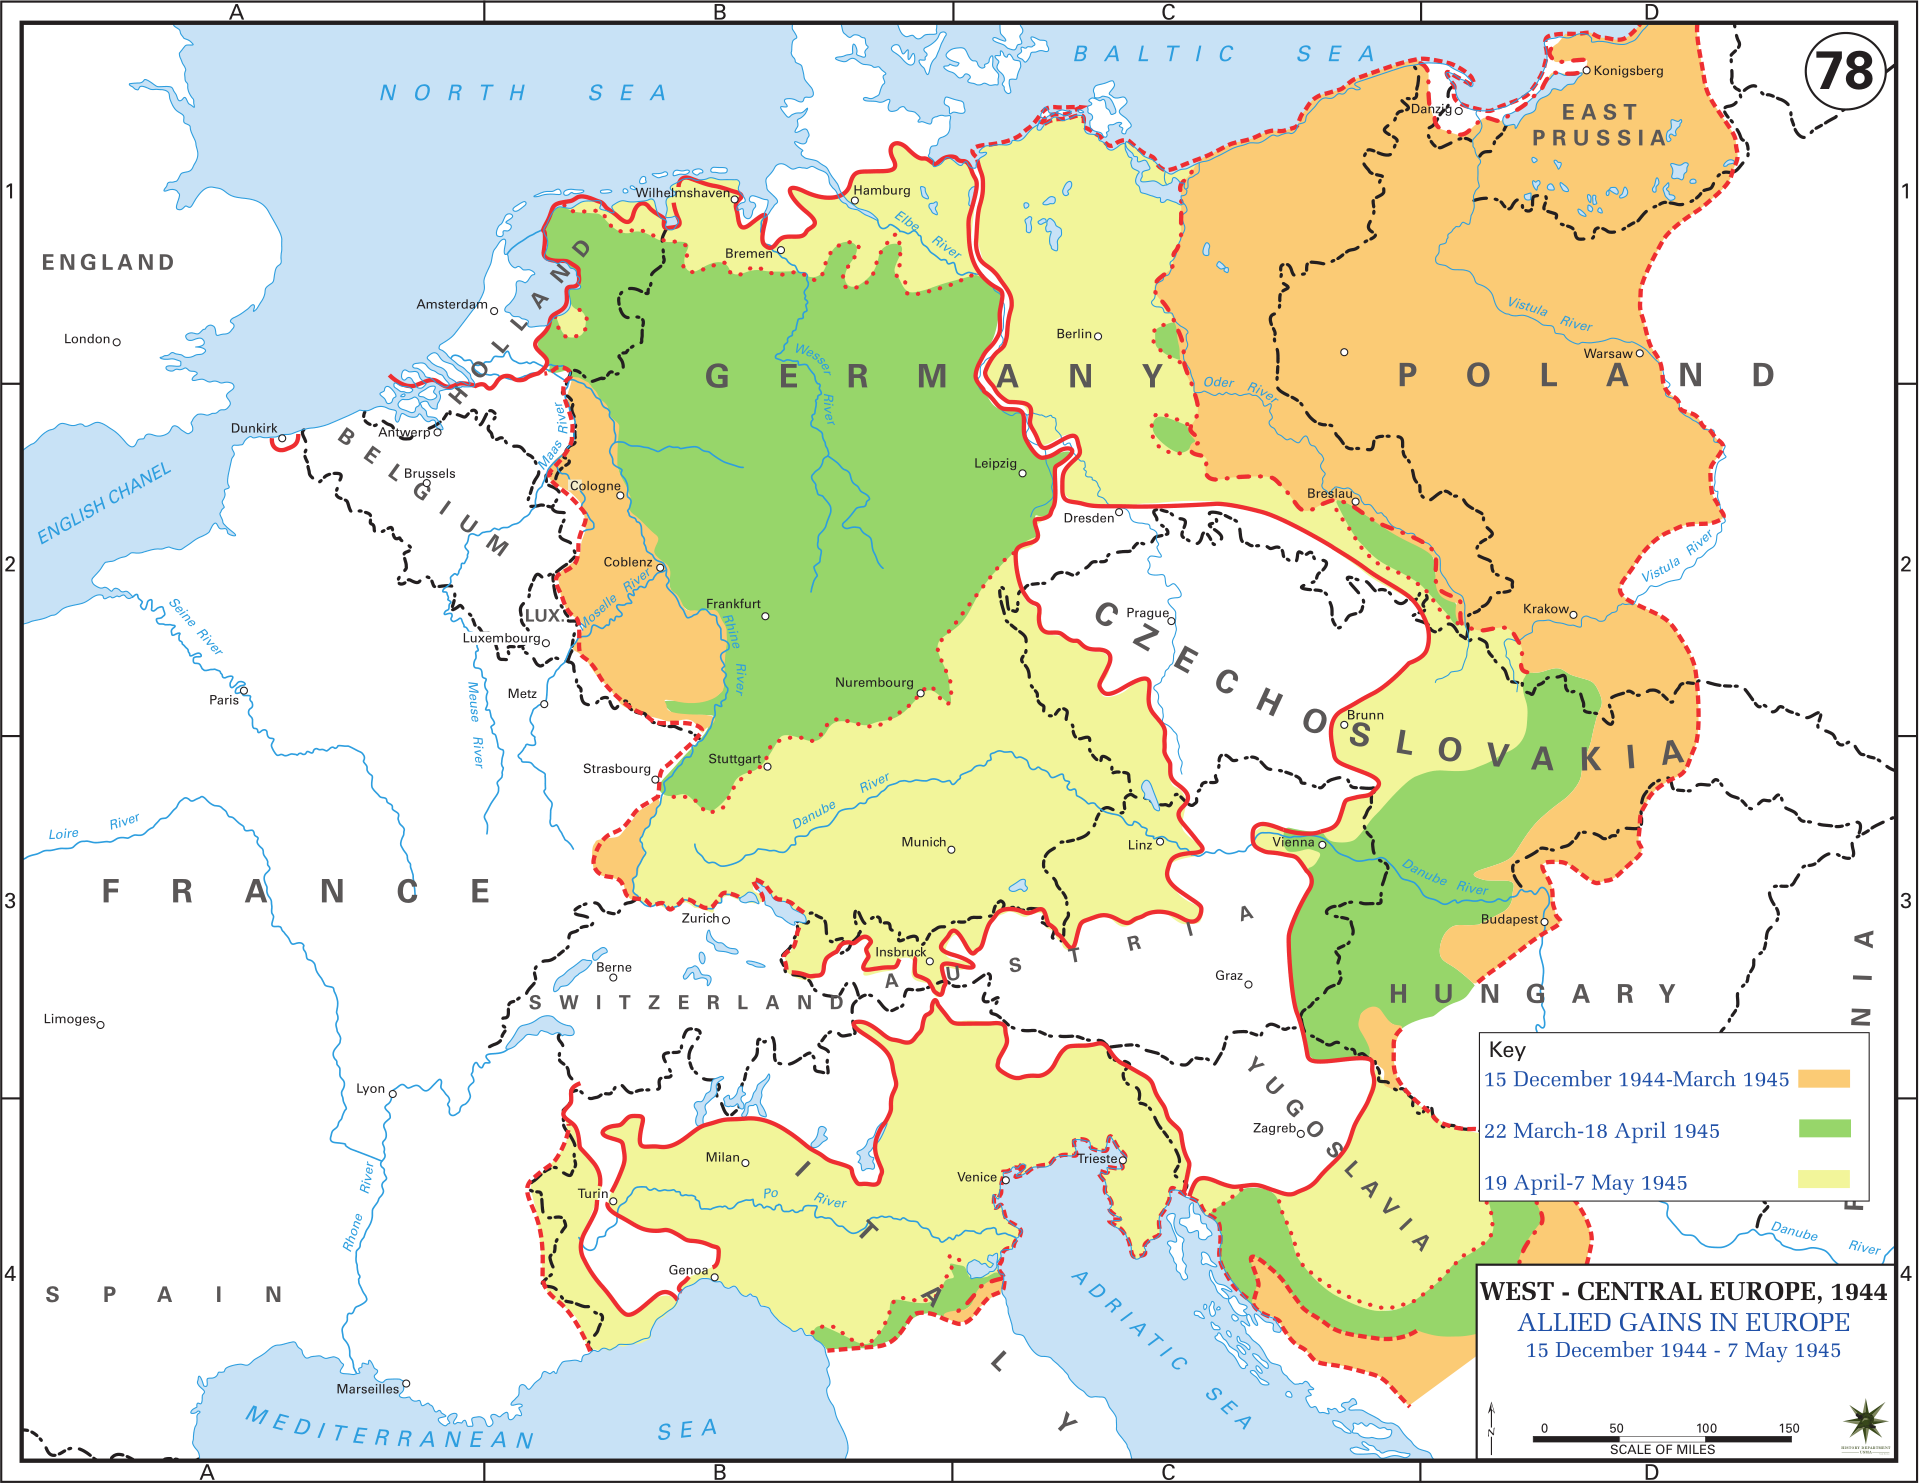 allied gains in europe december 1944 may 1945